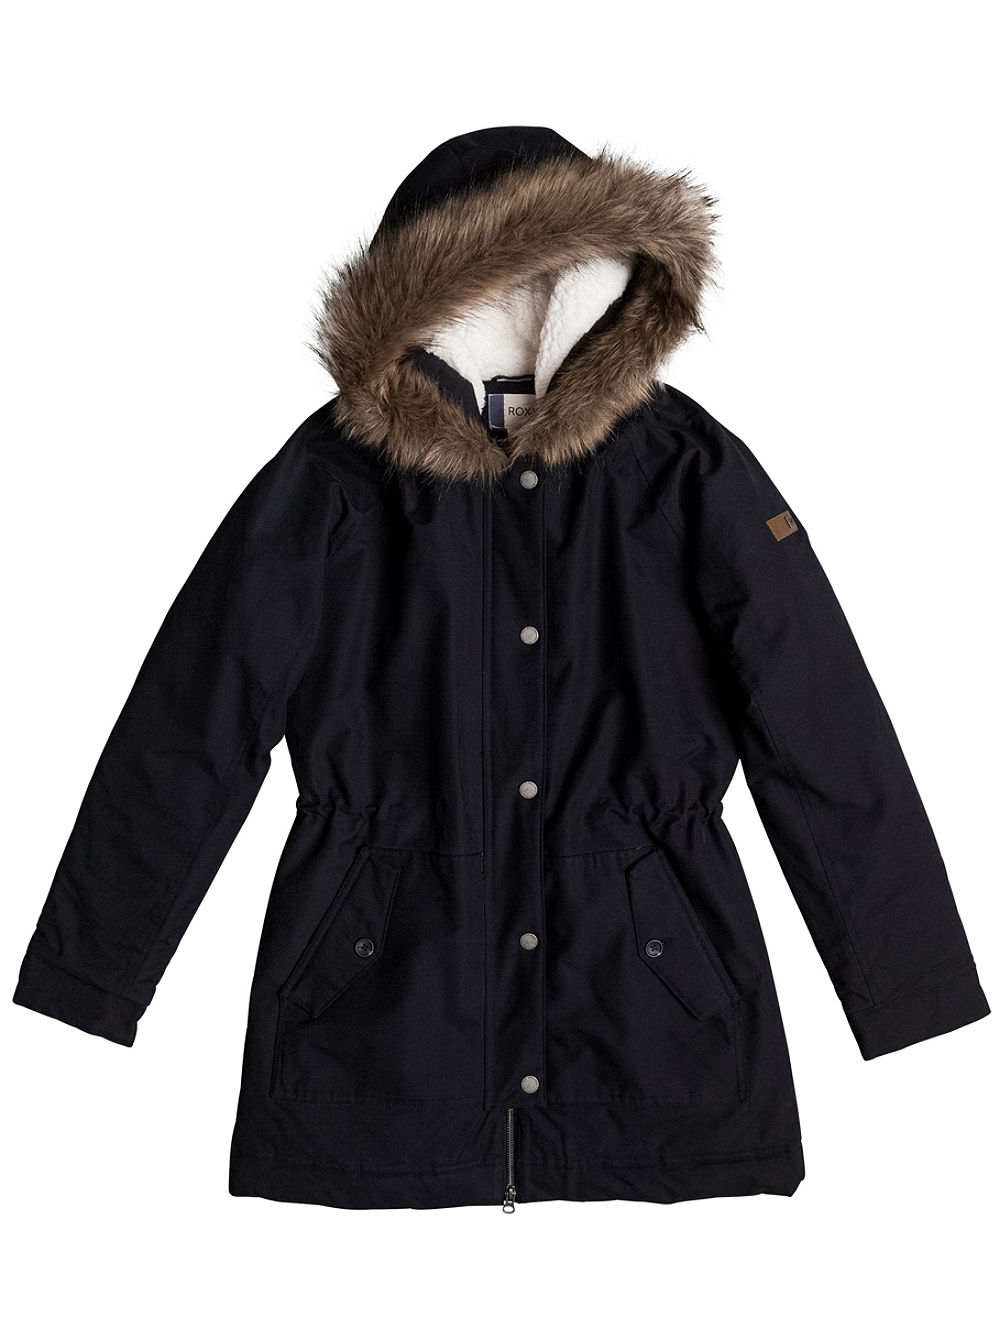 Mountain Song Jacket